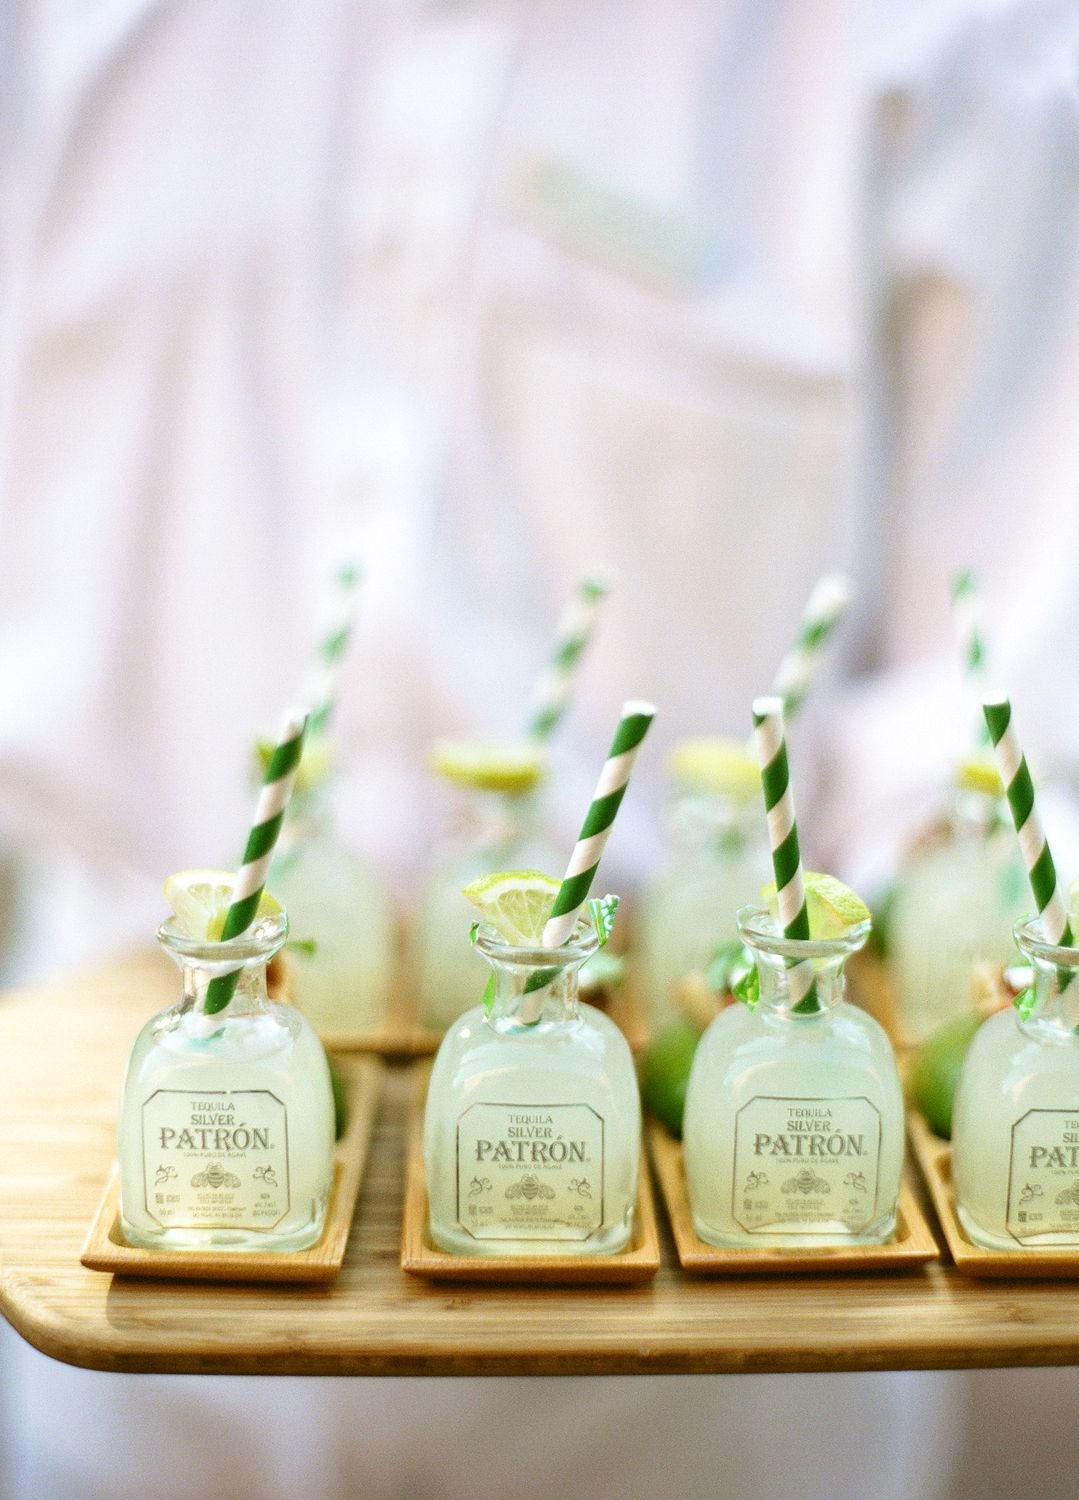 Patron Margaritas Mini patron bottles wedding dinner party outdoor ...